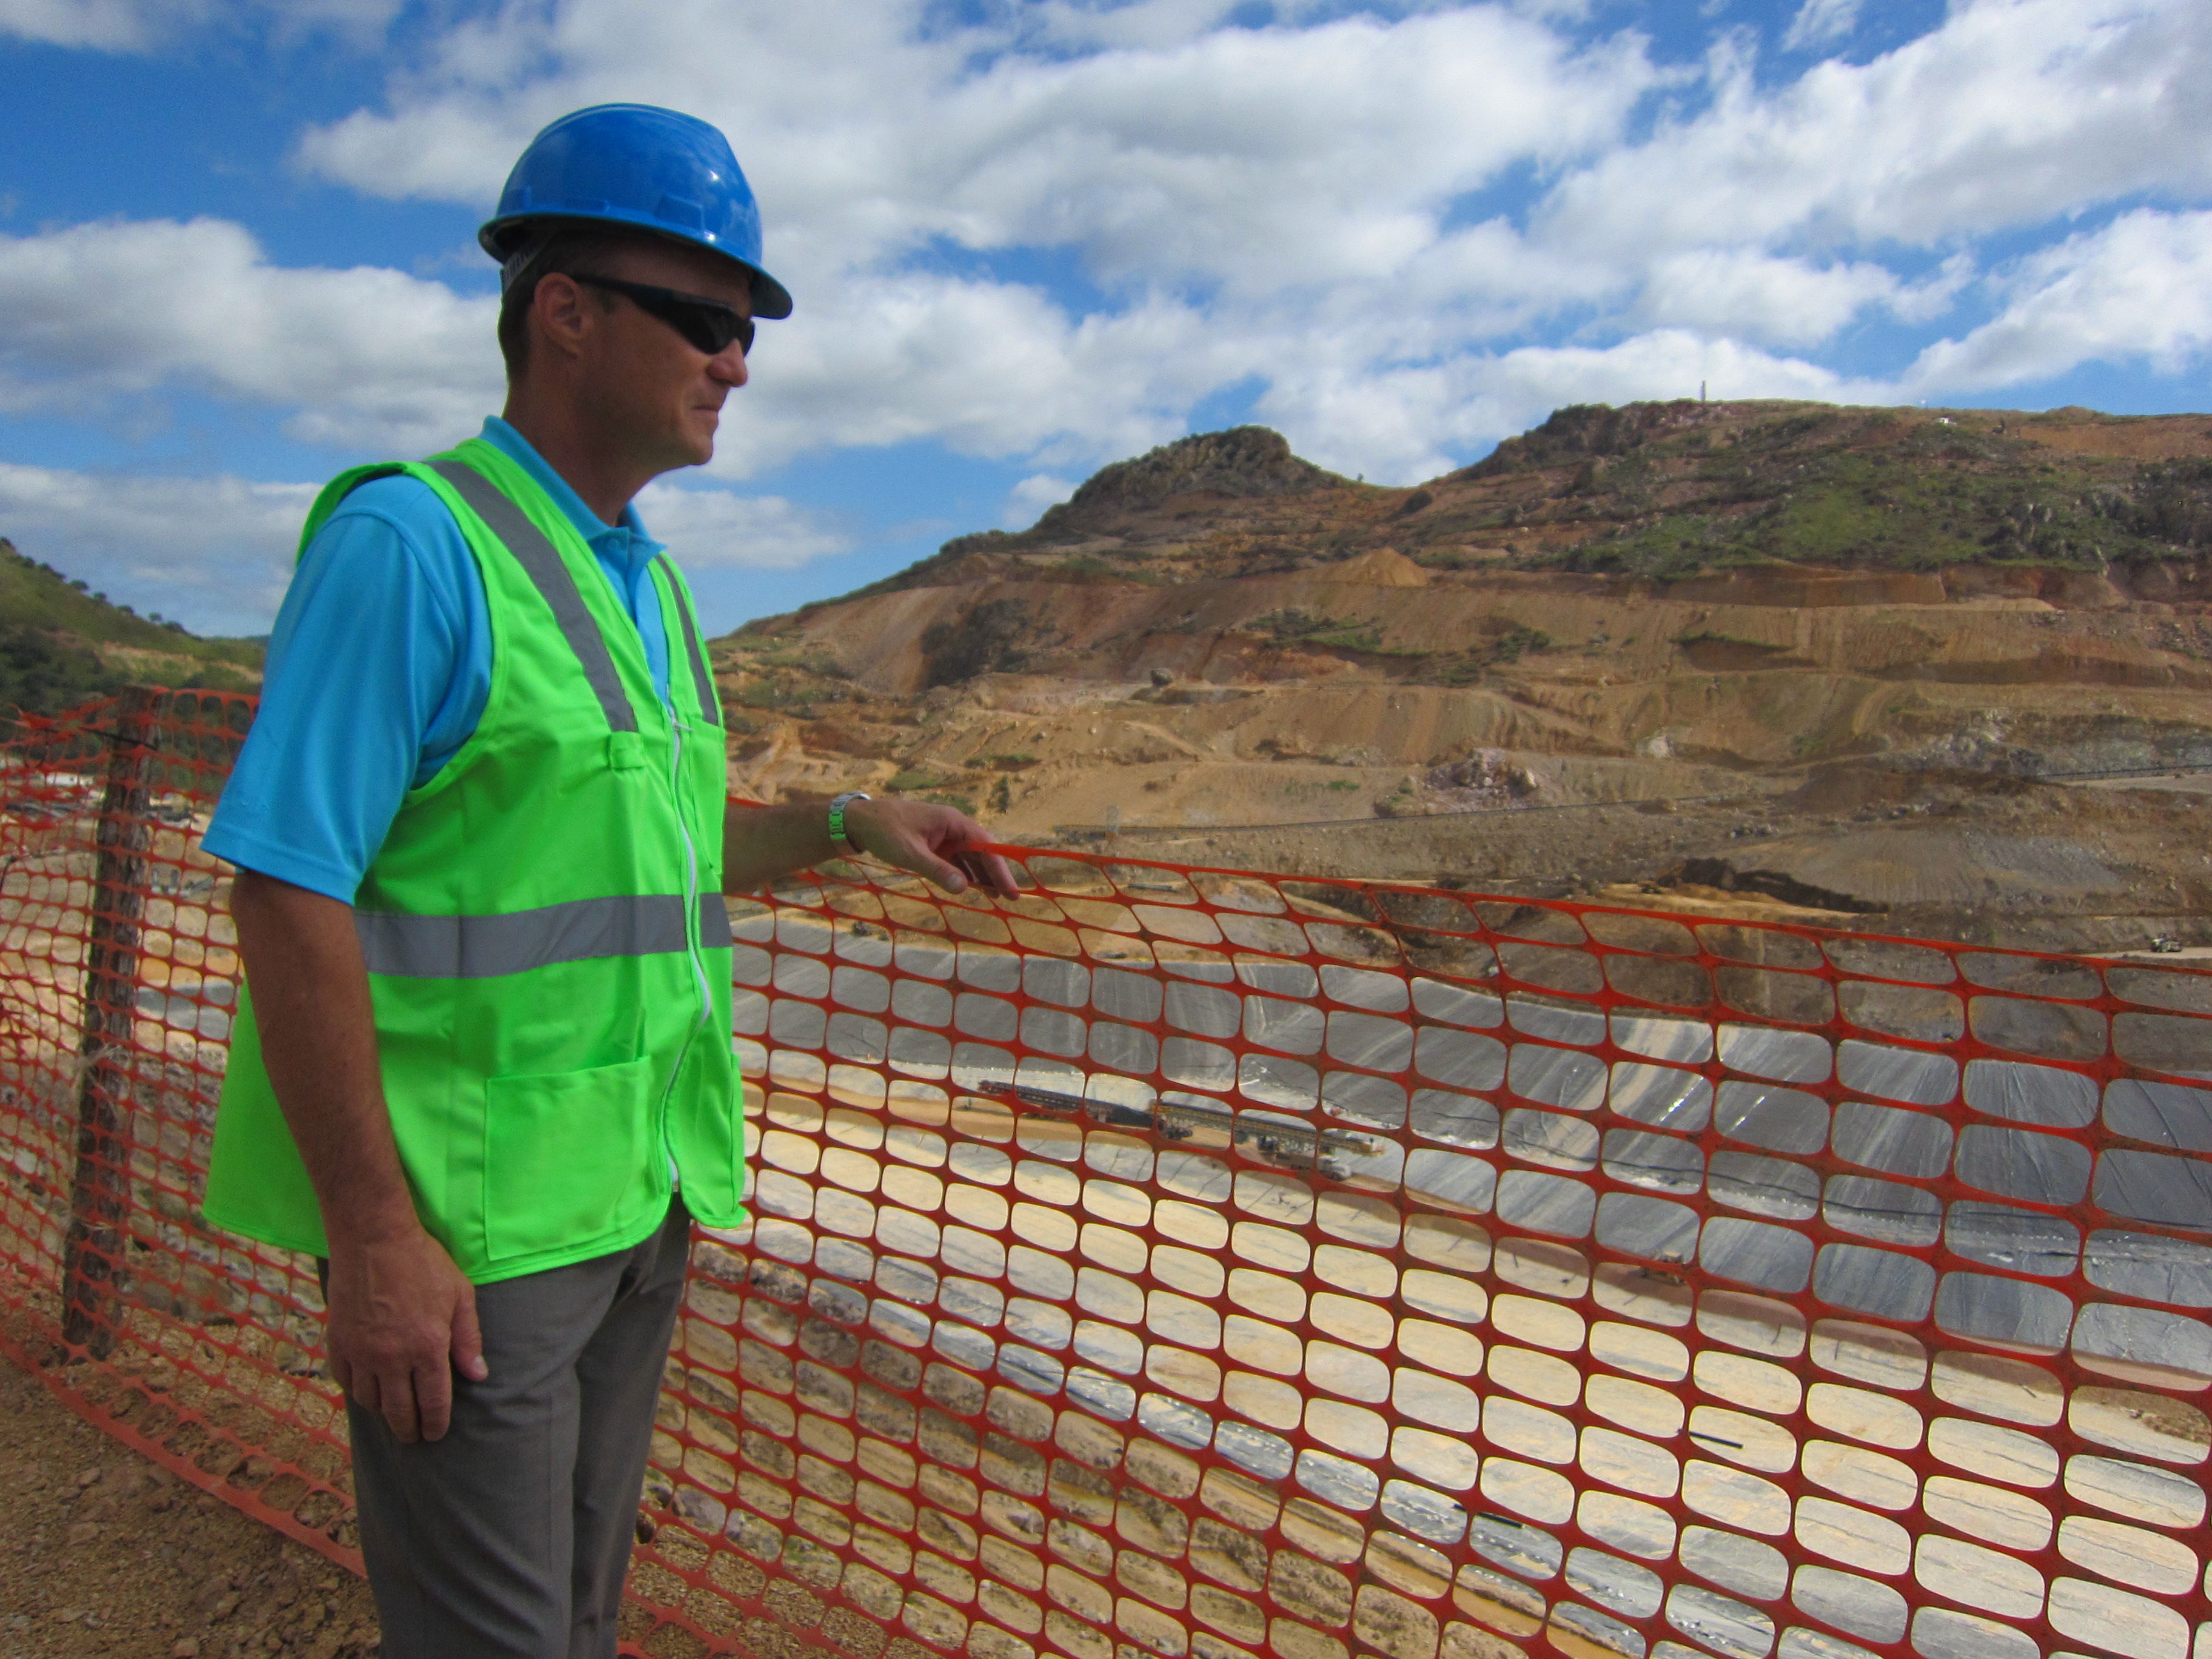 Agnico Eagle Mines CEO Sean Boyd checks out the heap-leach pad at the La India gold mine in Sonora, Mexico, in mid-2013. Photo by Salma Tarikh.